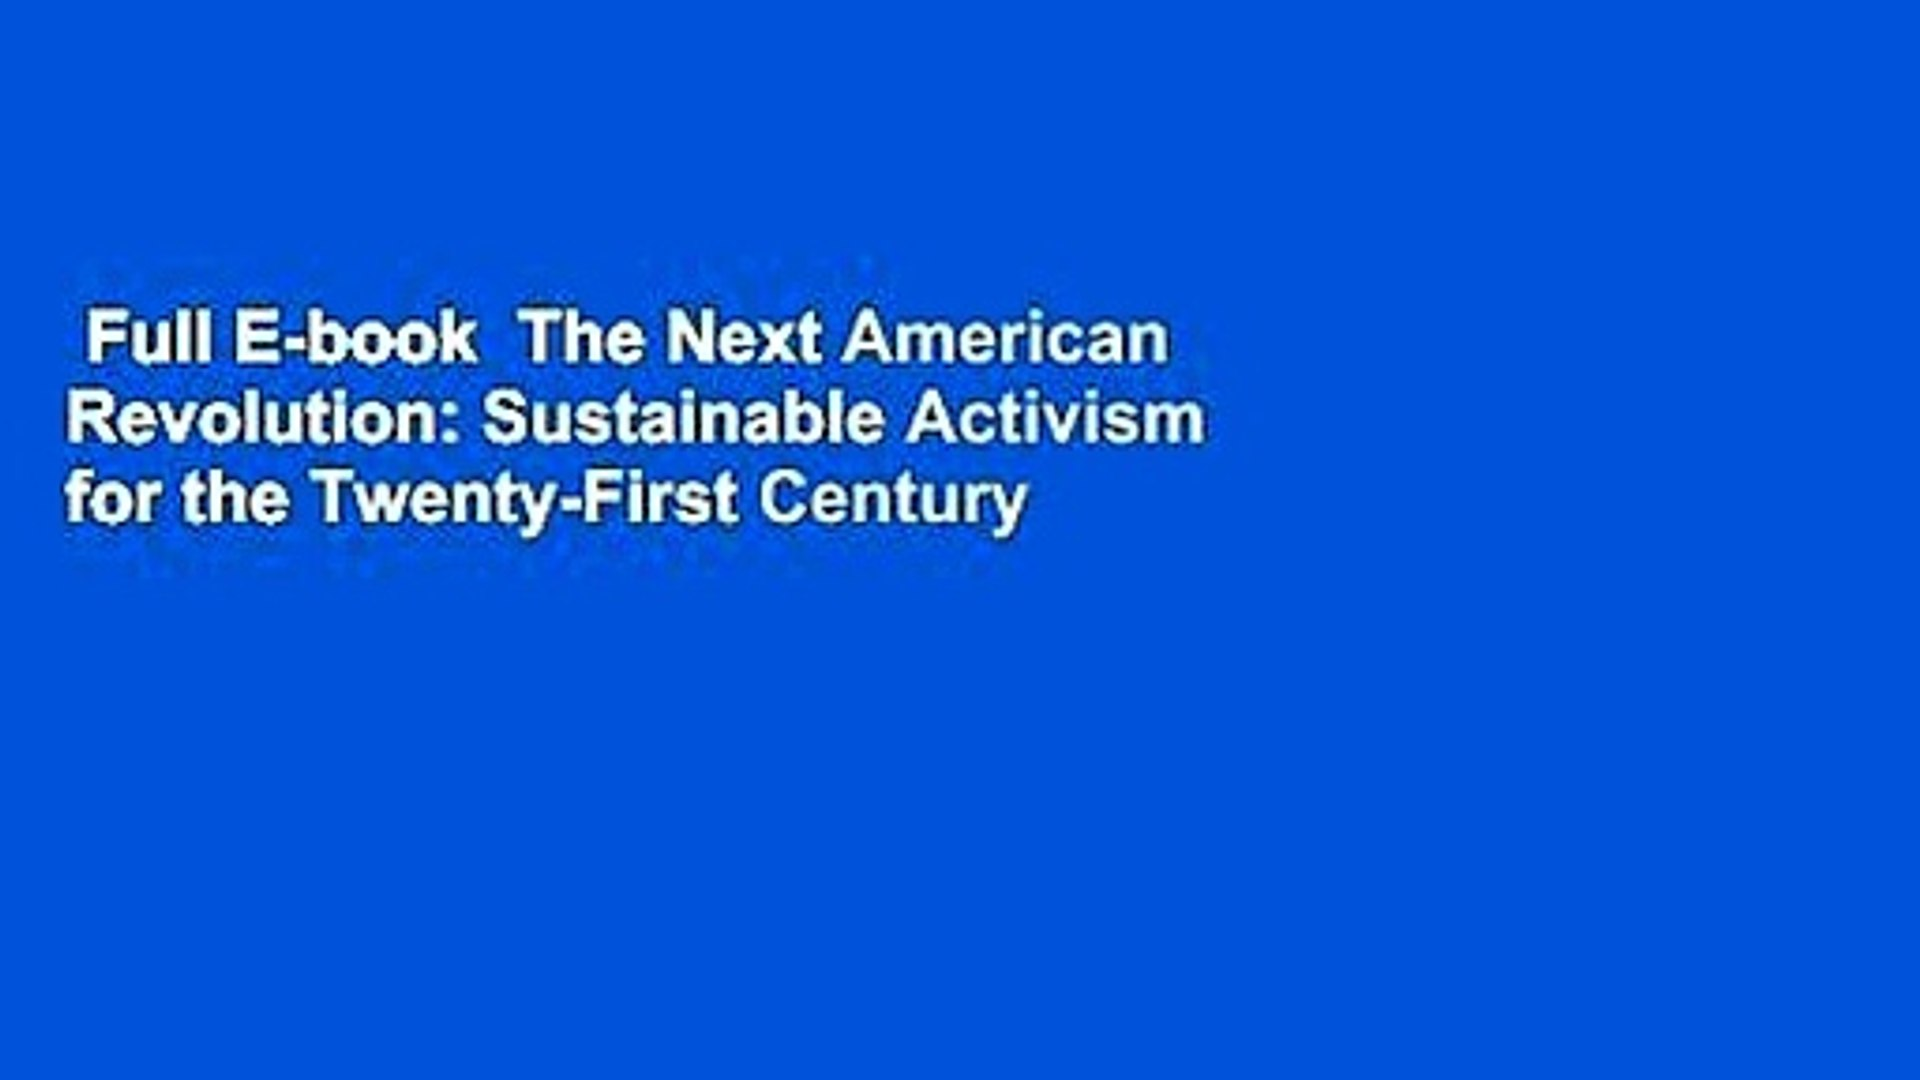 Full E-book  The Next American Revolution: Sustainable Activism for the Twenty-First Century